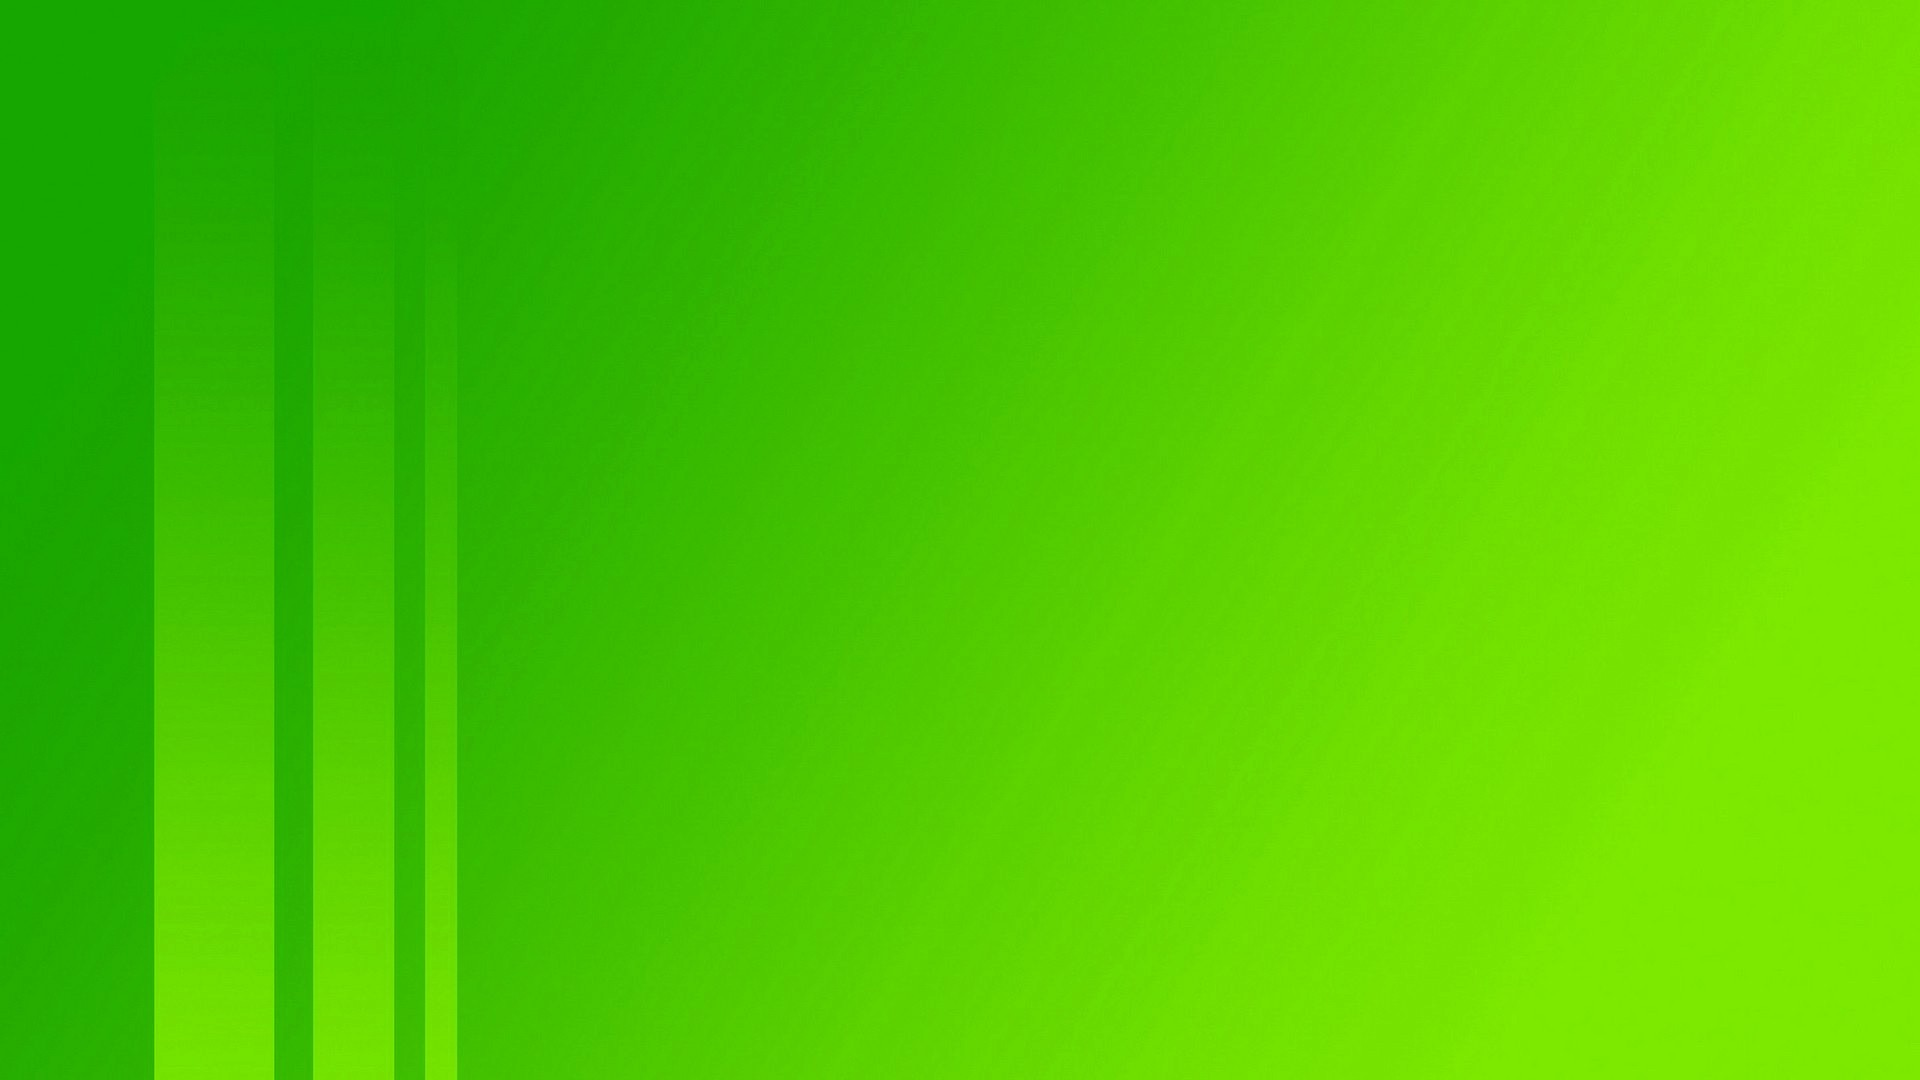 Lime Green computer wallpaper